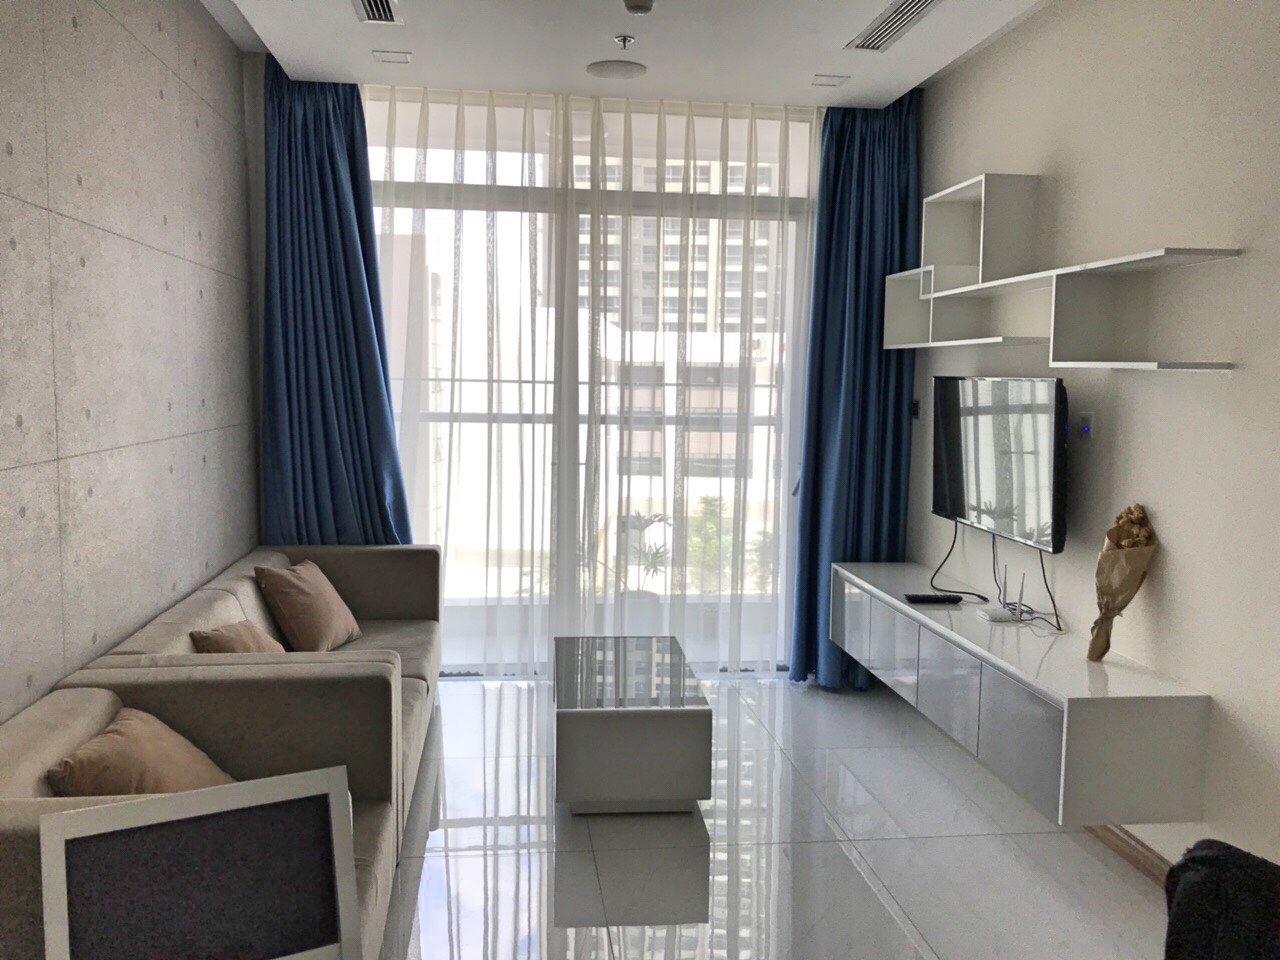 636928455259851982_vinhomes central park apartment for rent in binh thanh district hcmc BT105P5297(6)